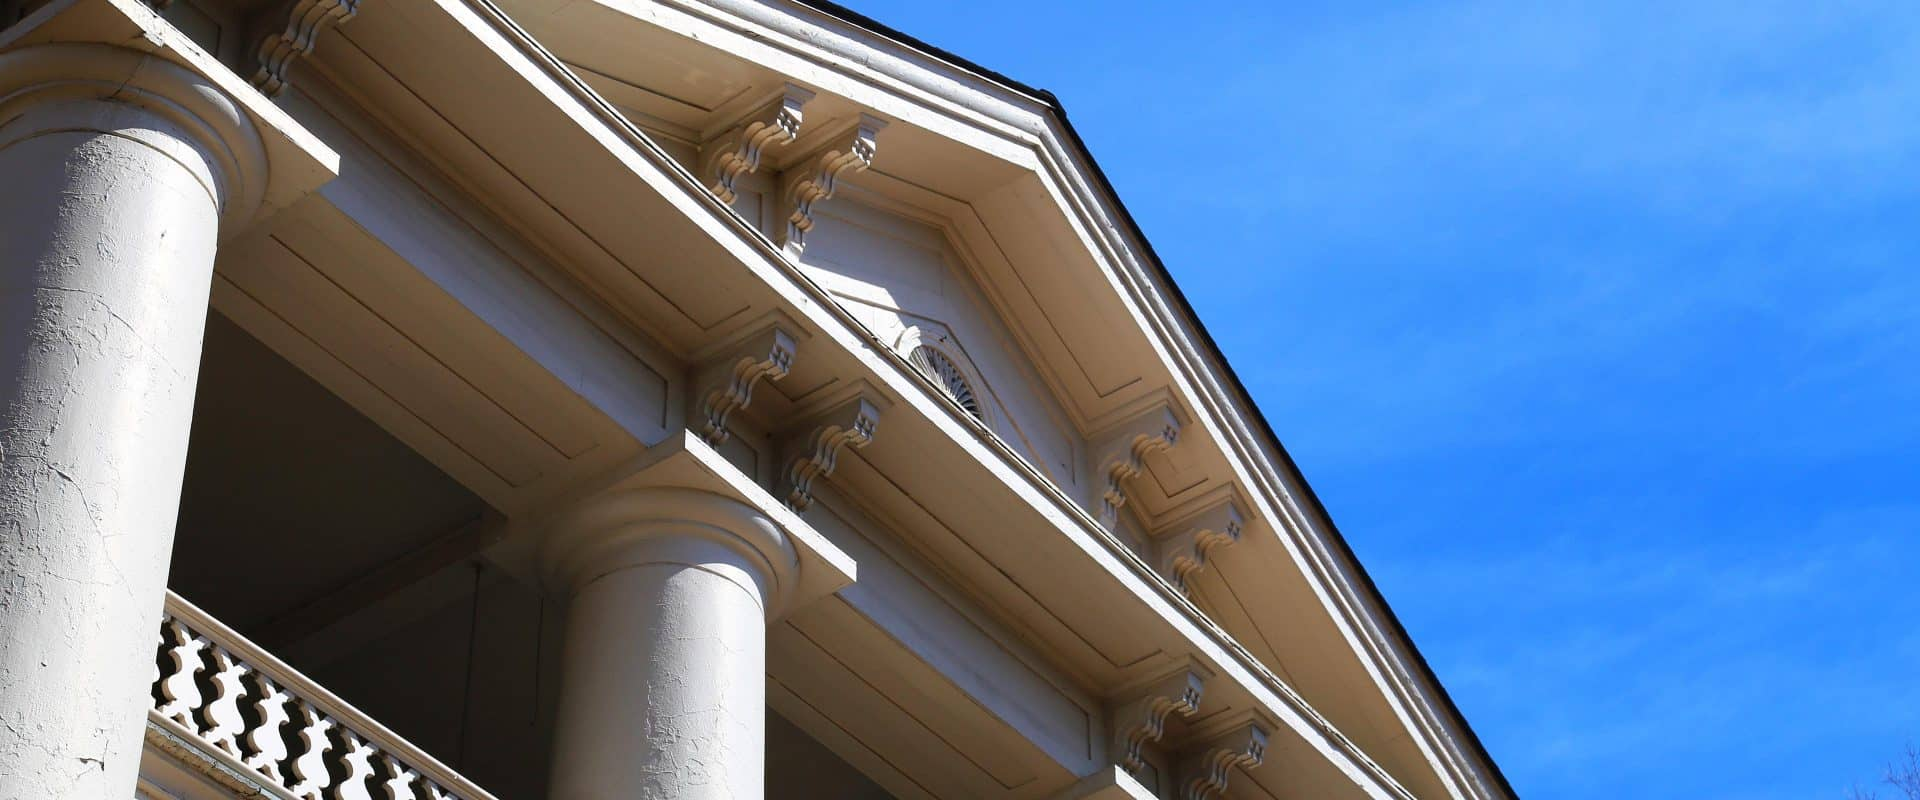 An upward angle of the columns of Main Building.